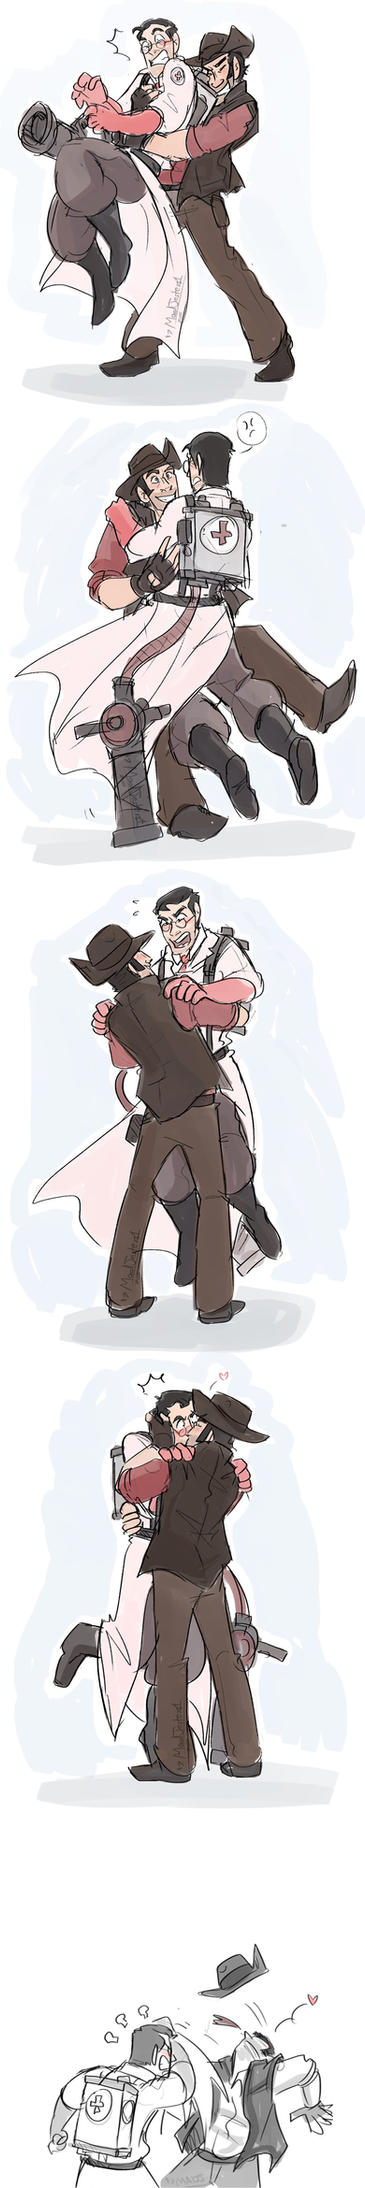 TF2- Victory by MadJesters1